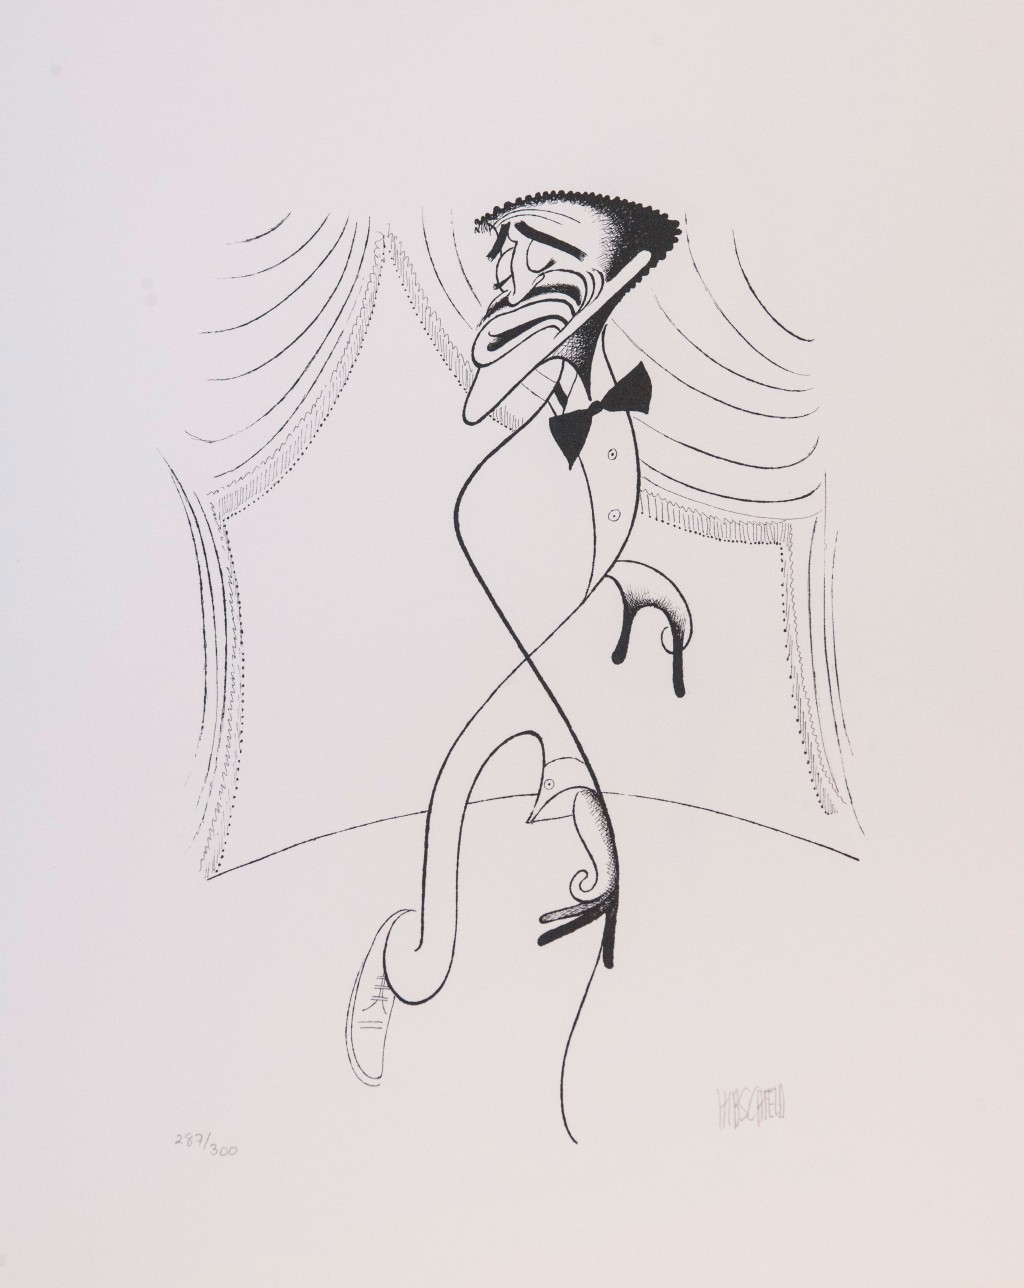 Al Hirschfeld master of line new yorker cartoon celebrity art Sammy Davis Jr.